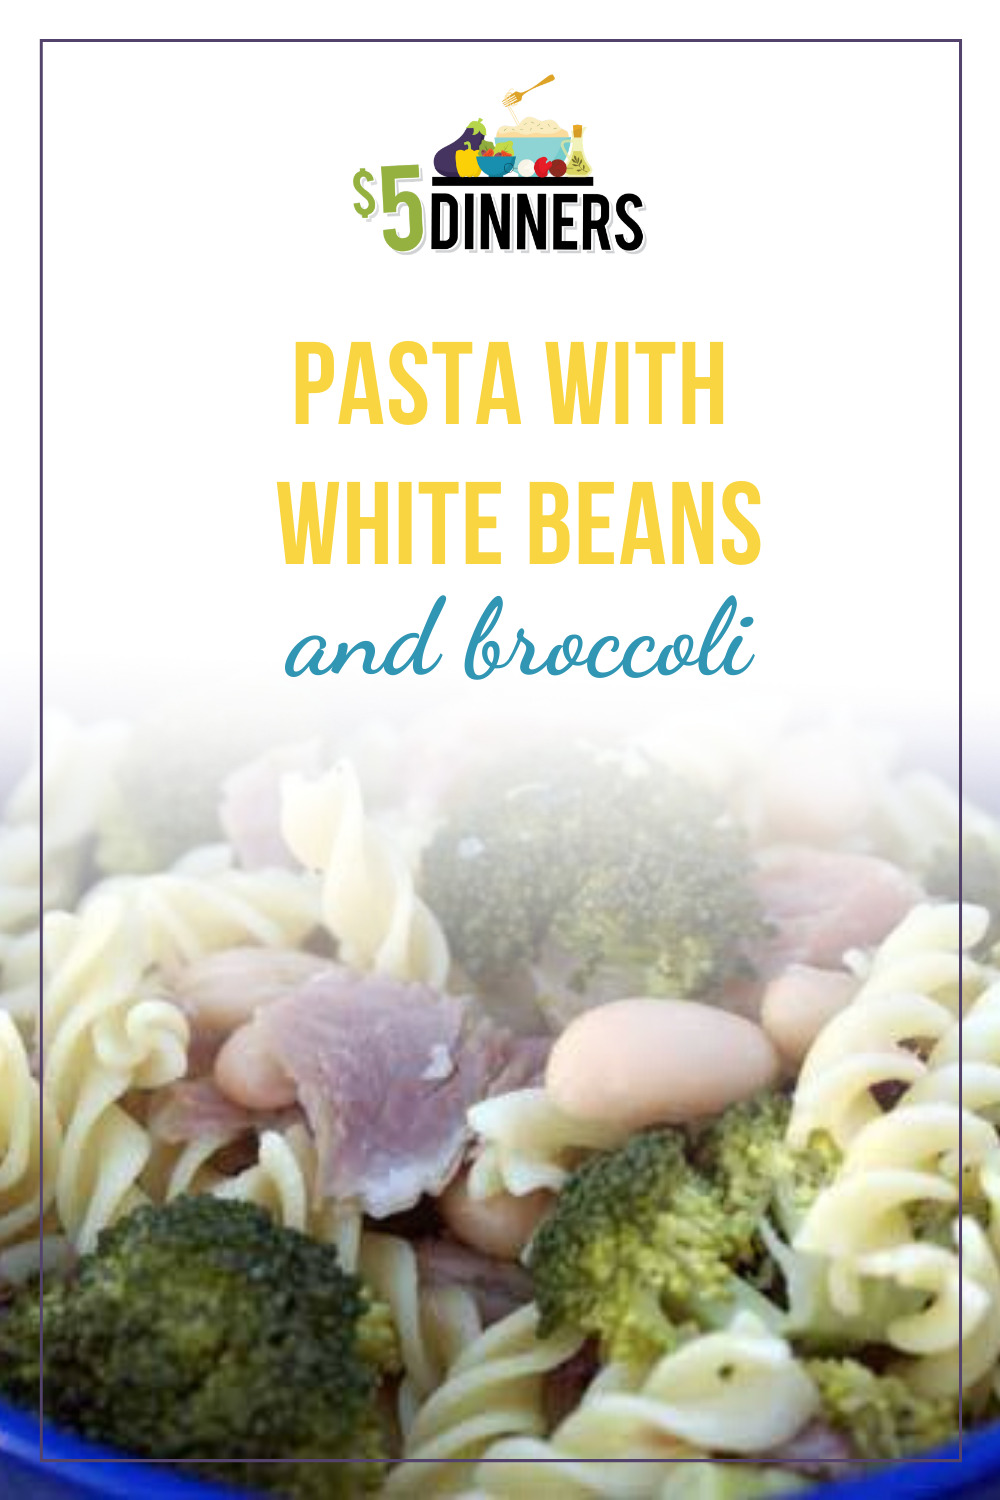 pasta with white beans and broccoli